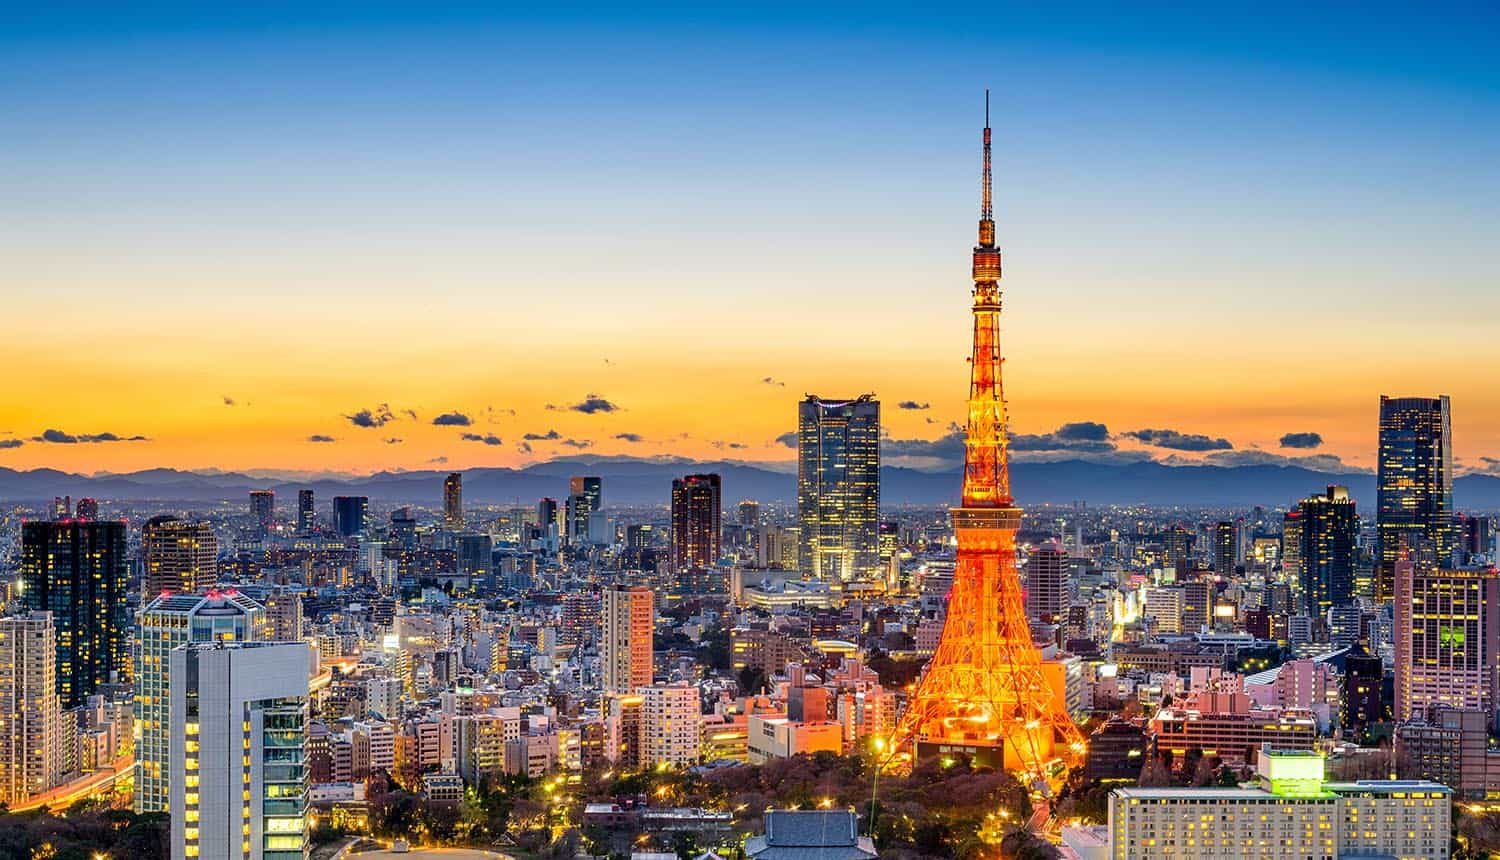 Japan skyline at Tokyo Tower showing cyber attacks on government agencies